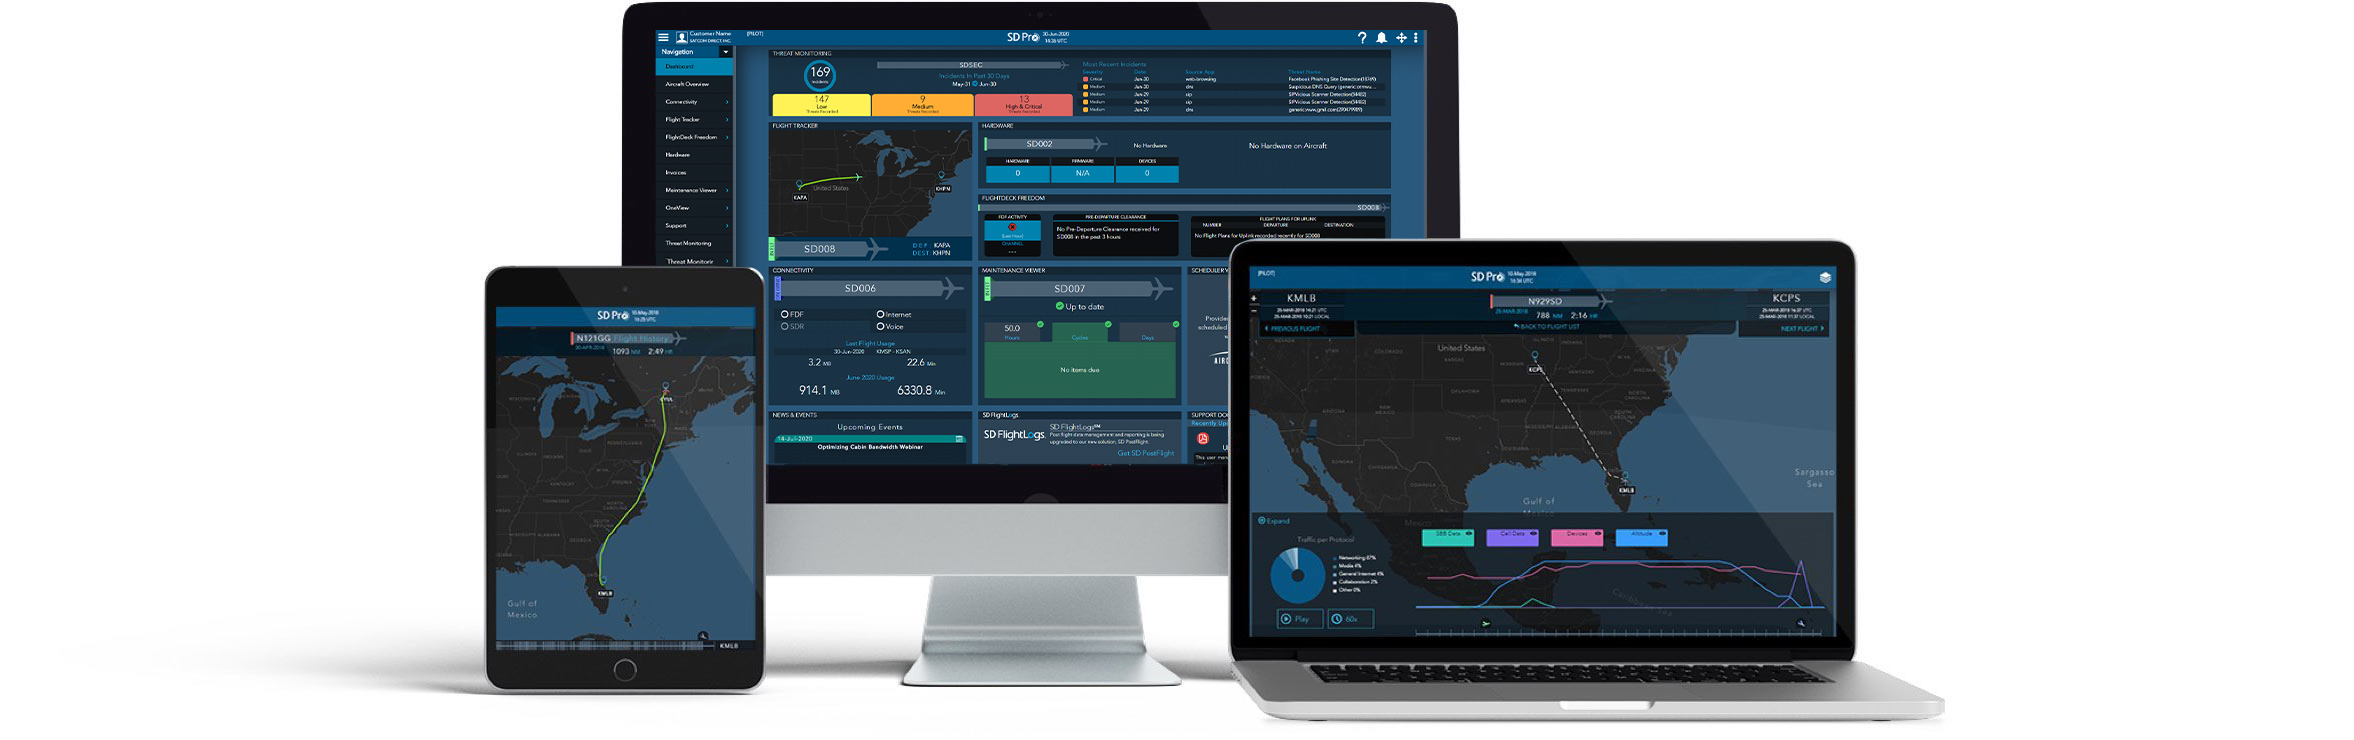 SD Pro is fully responsive and works across all devices and screen sizes